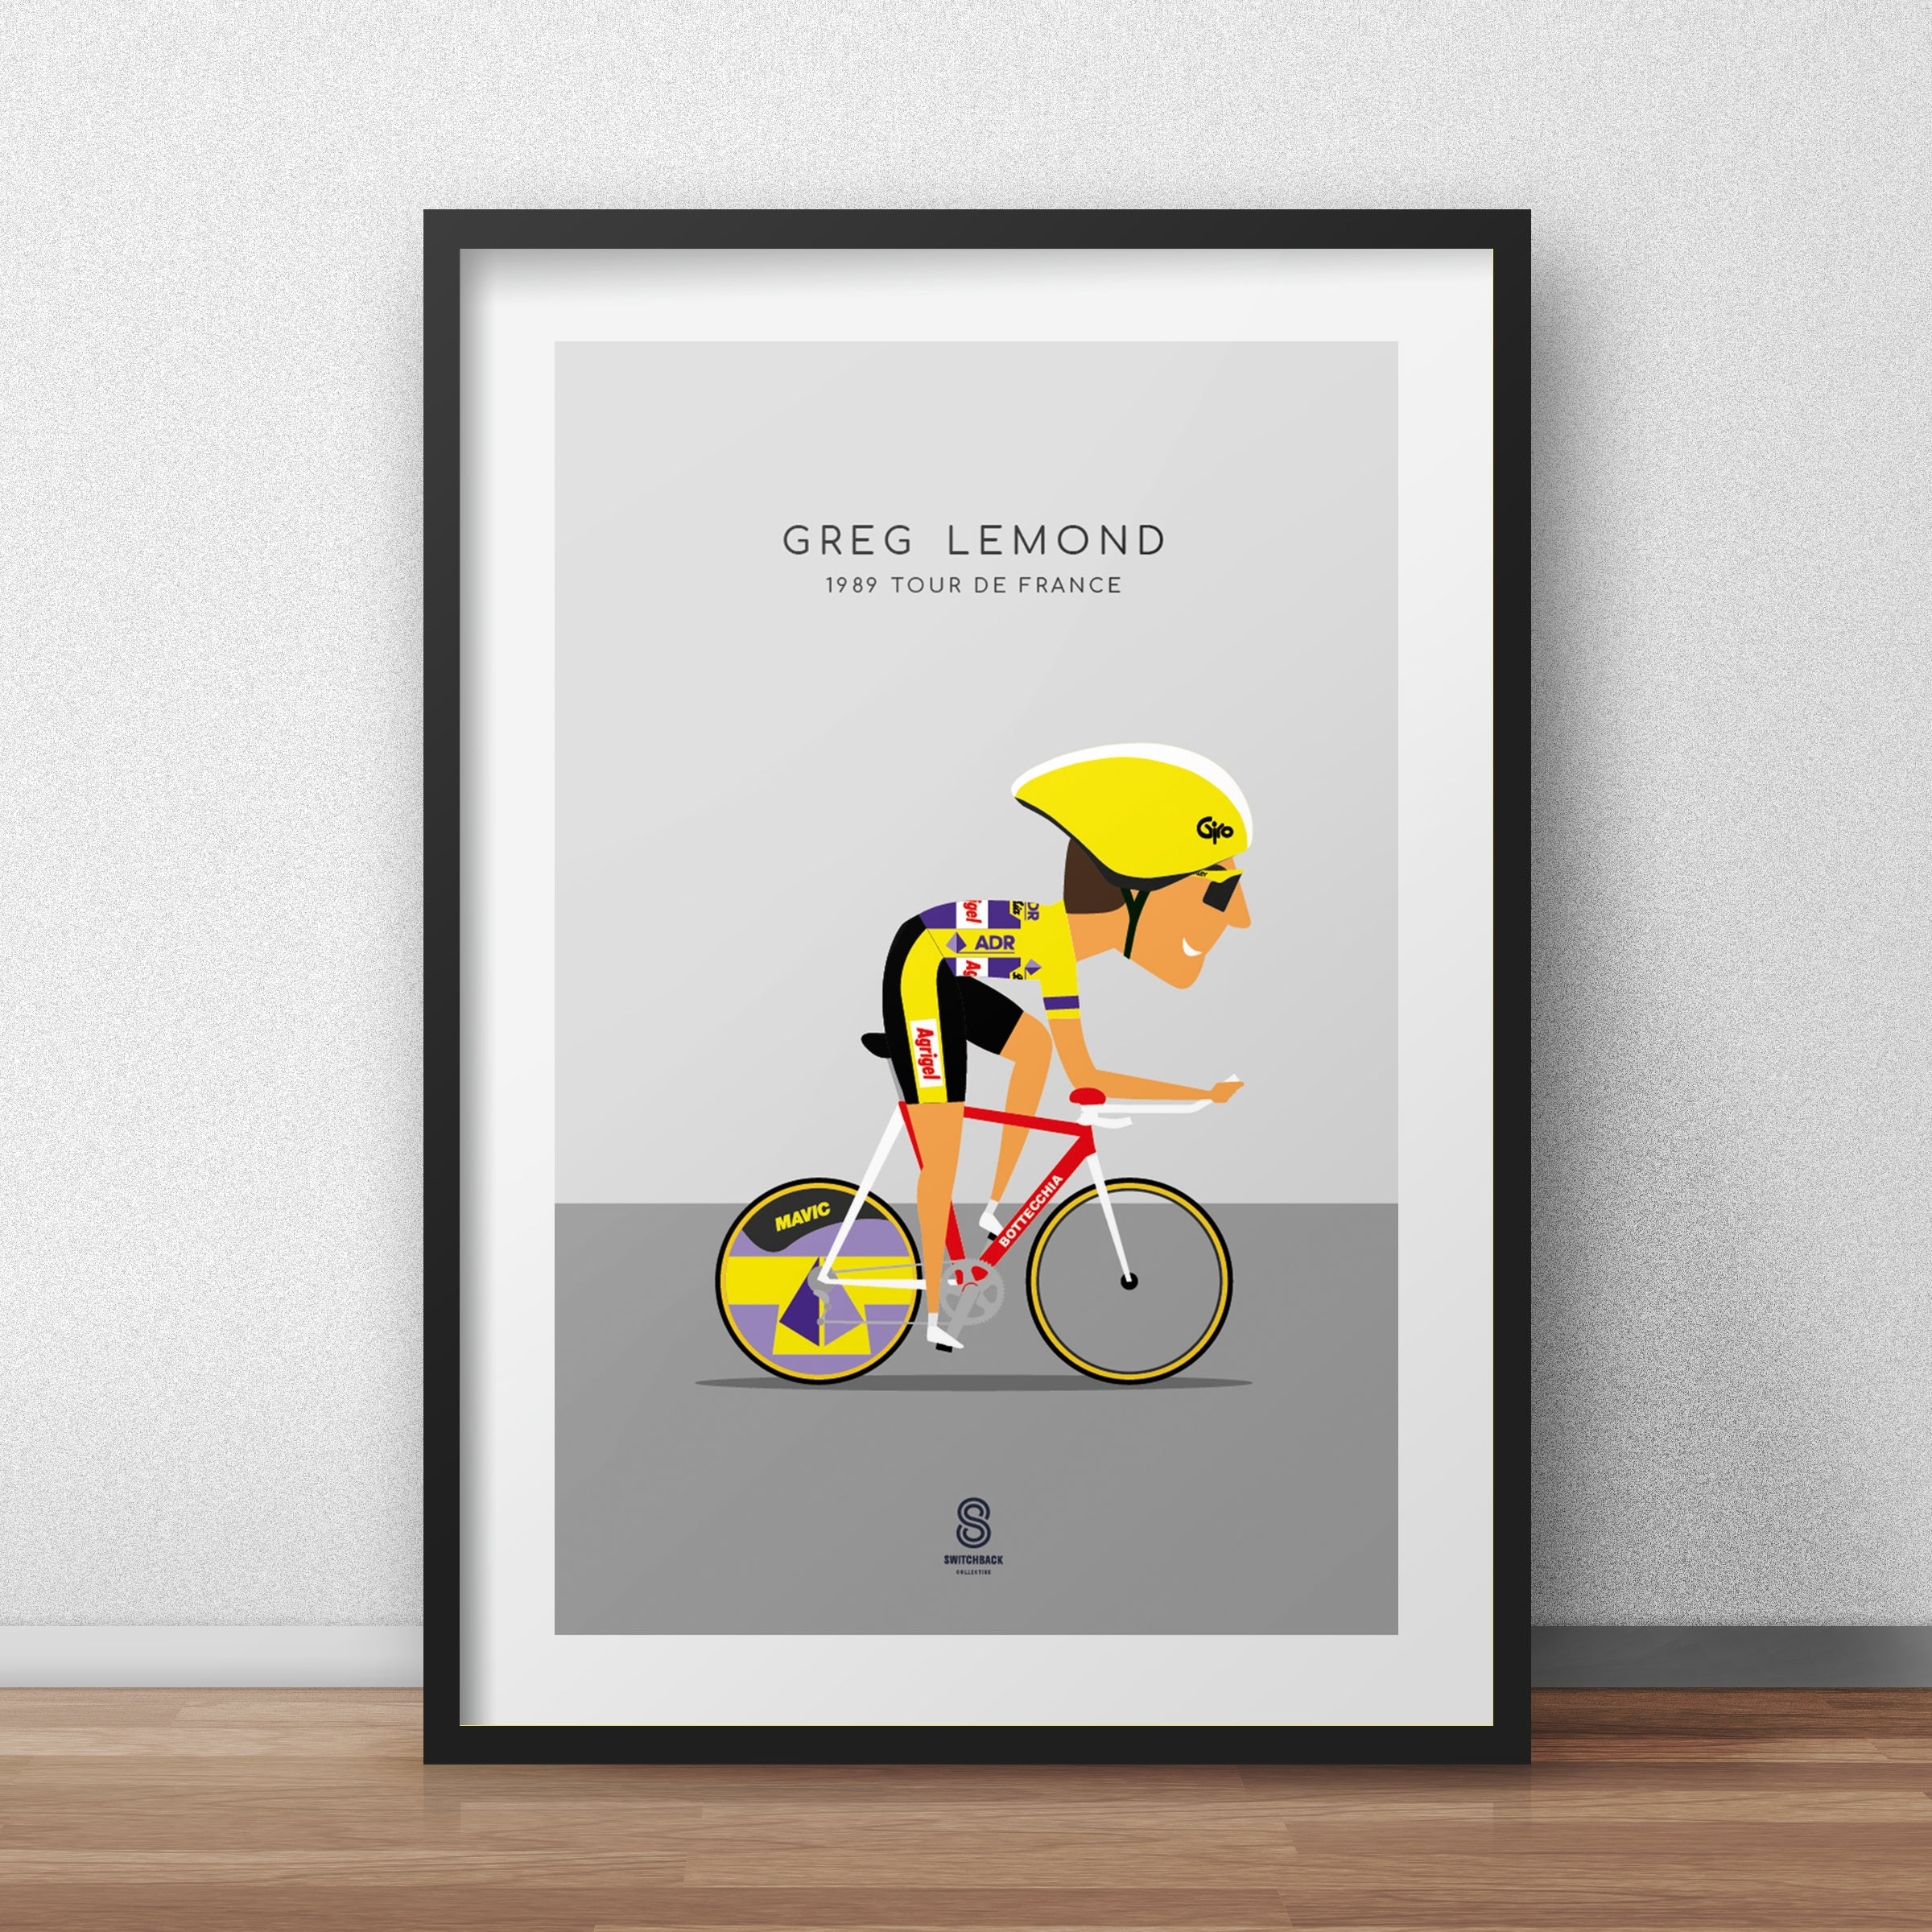 Greg Lemond ADR - 1989 Tour De France Print